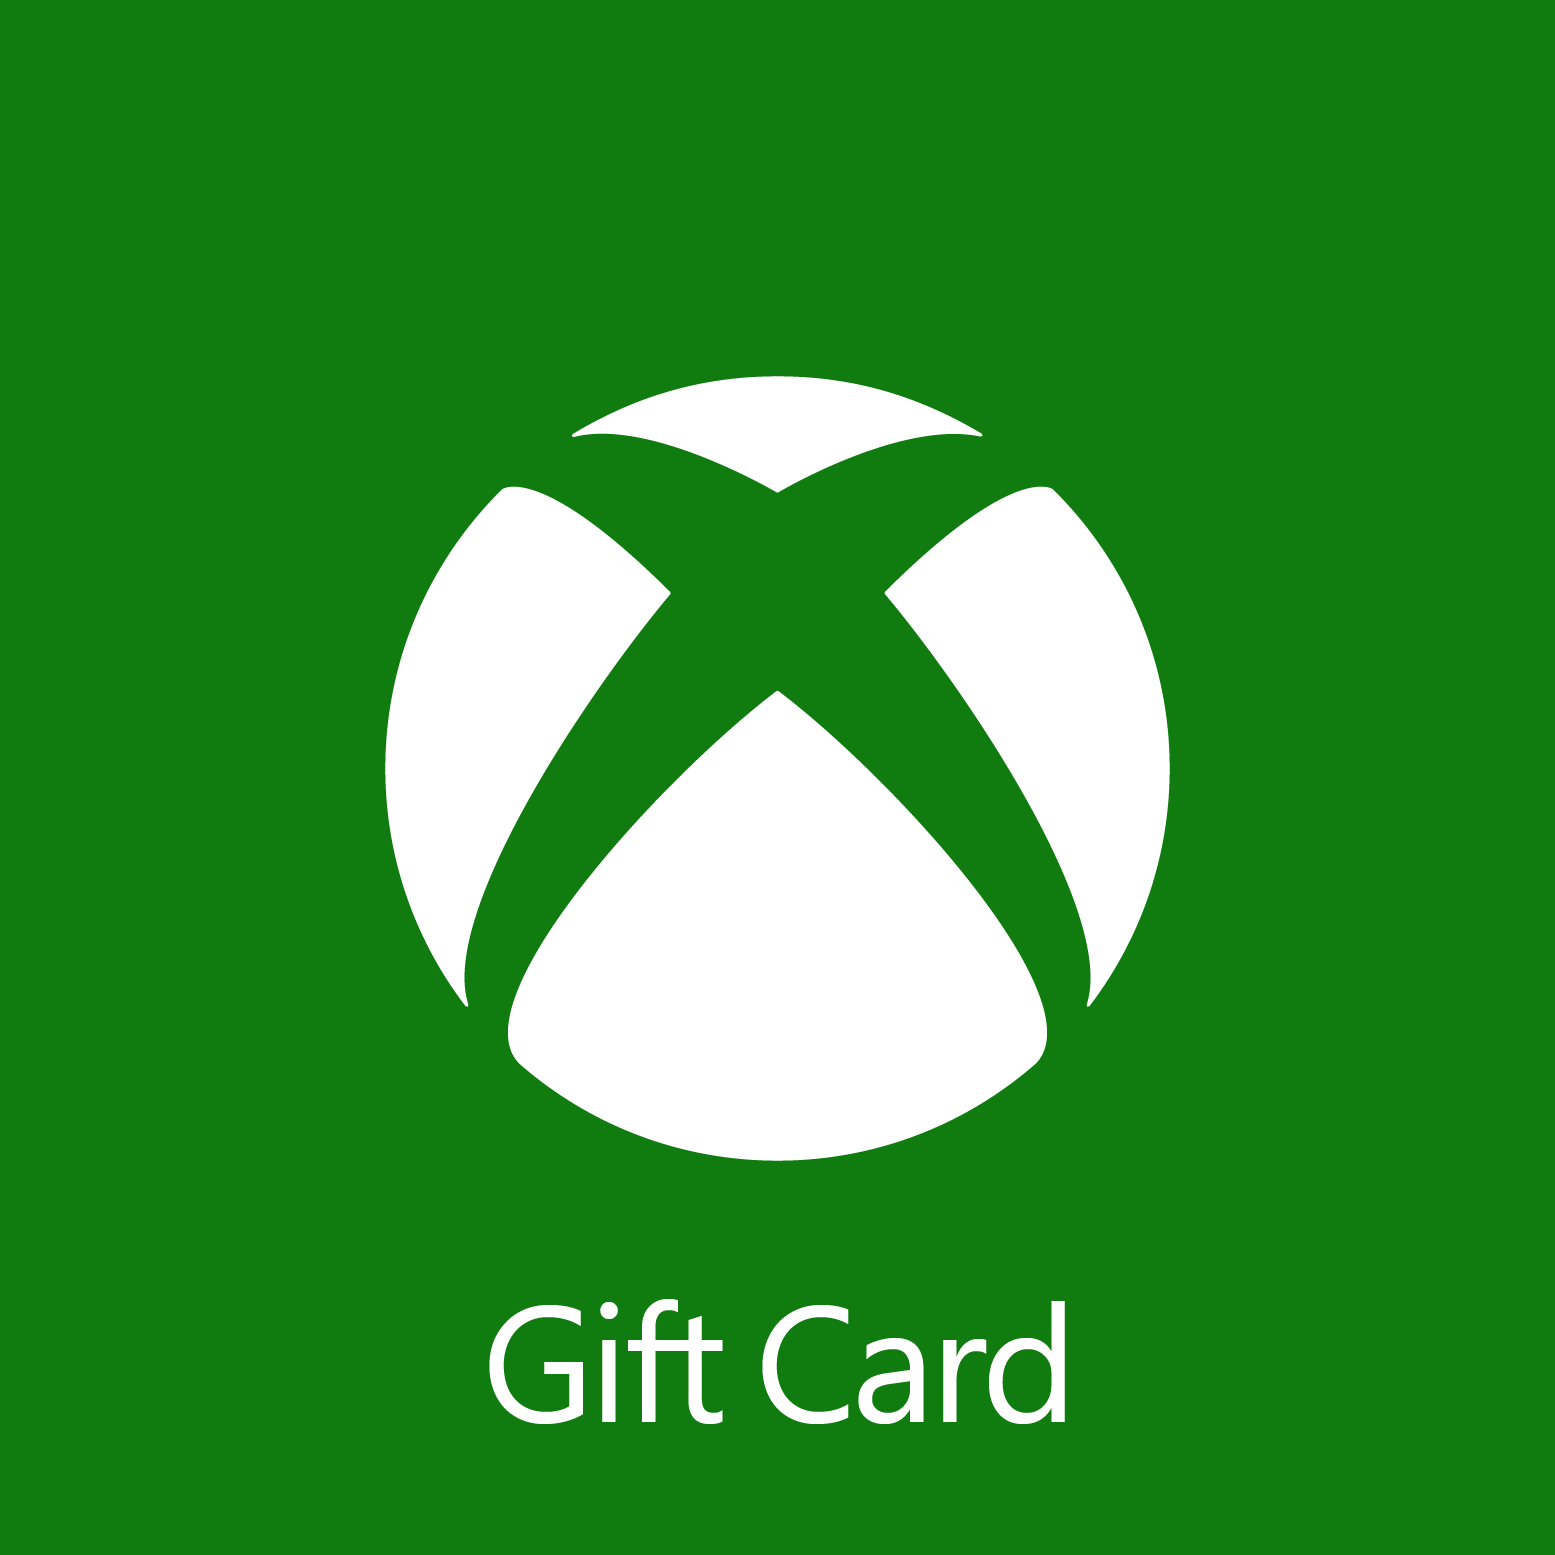 RE1Xx20?ver=255f - $85.00 Xbox Digital Gift Card